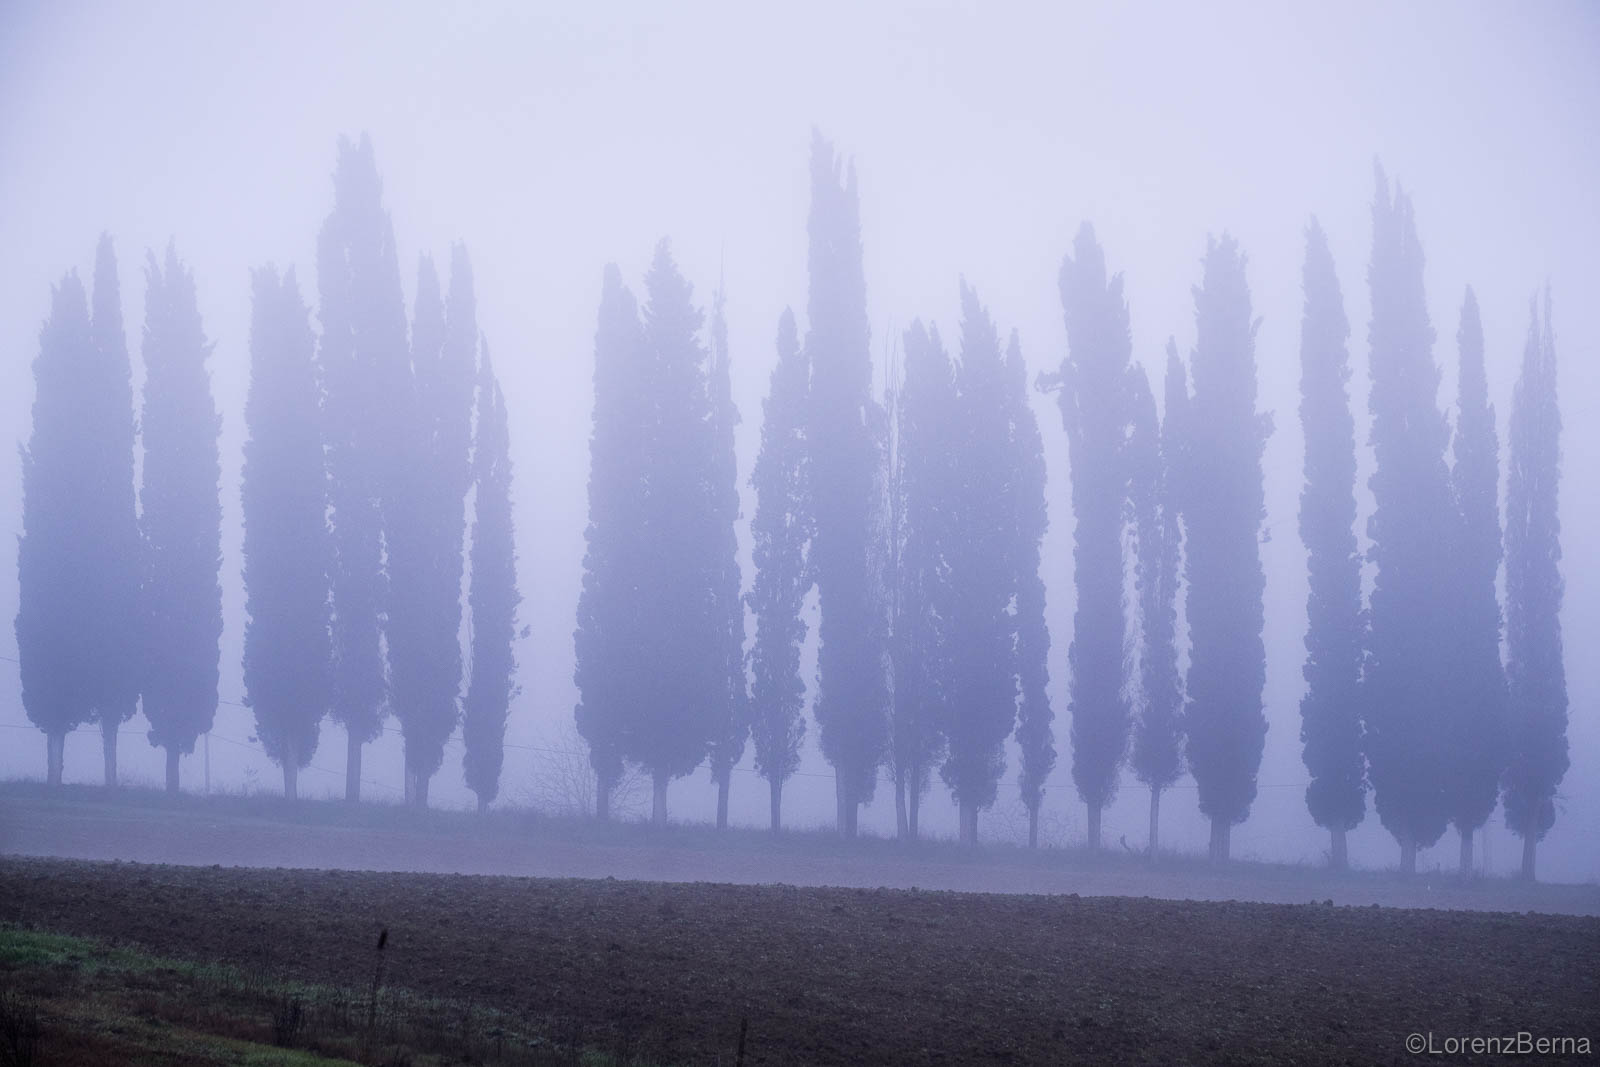 Line of Italian cypresses in the Light of a misty morning.